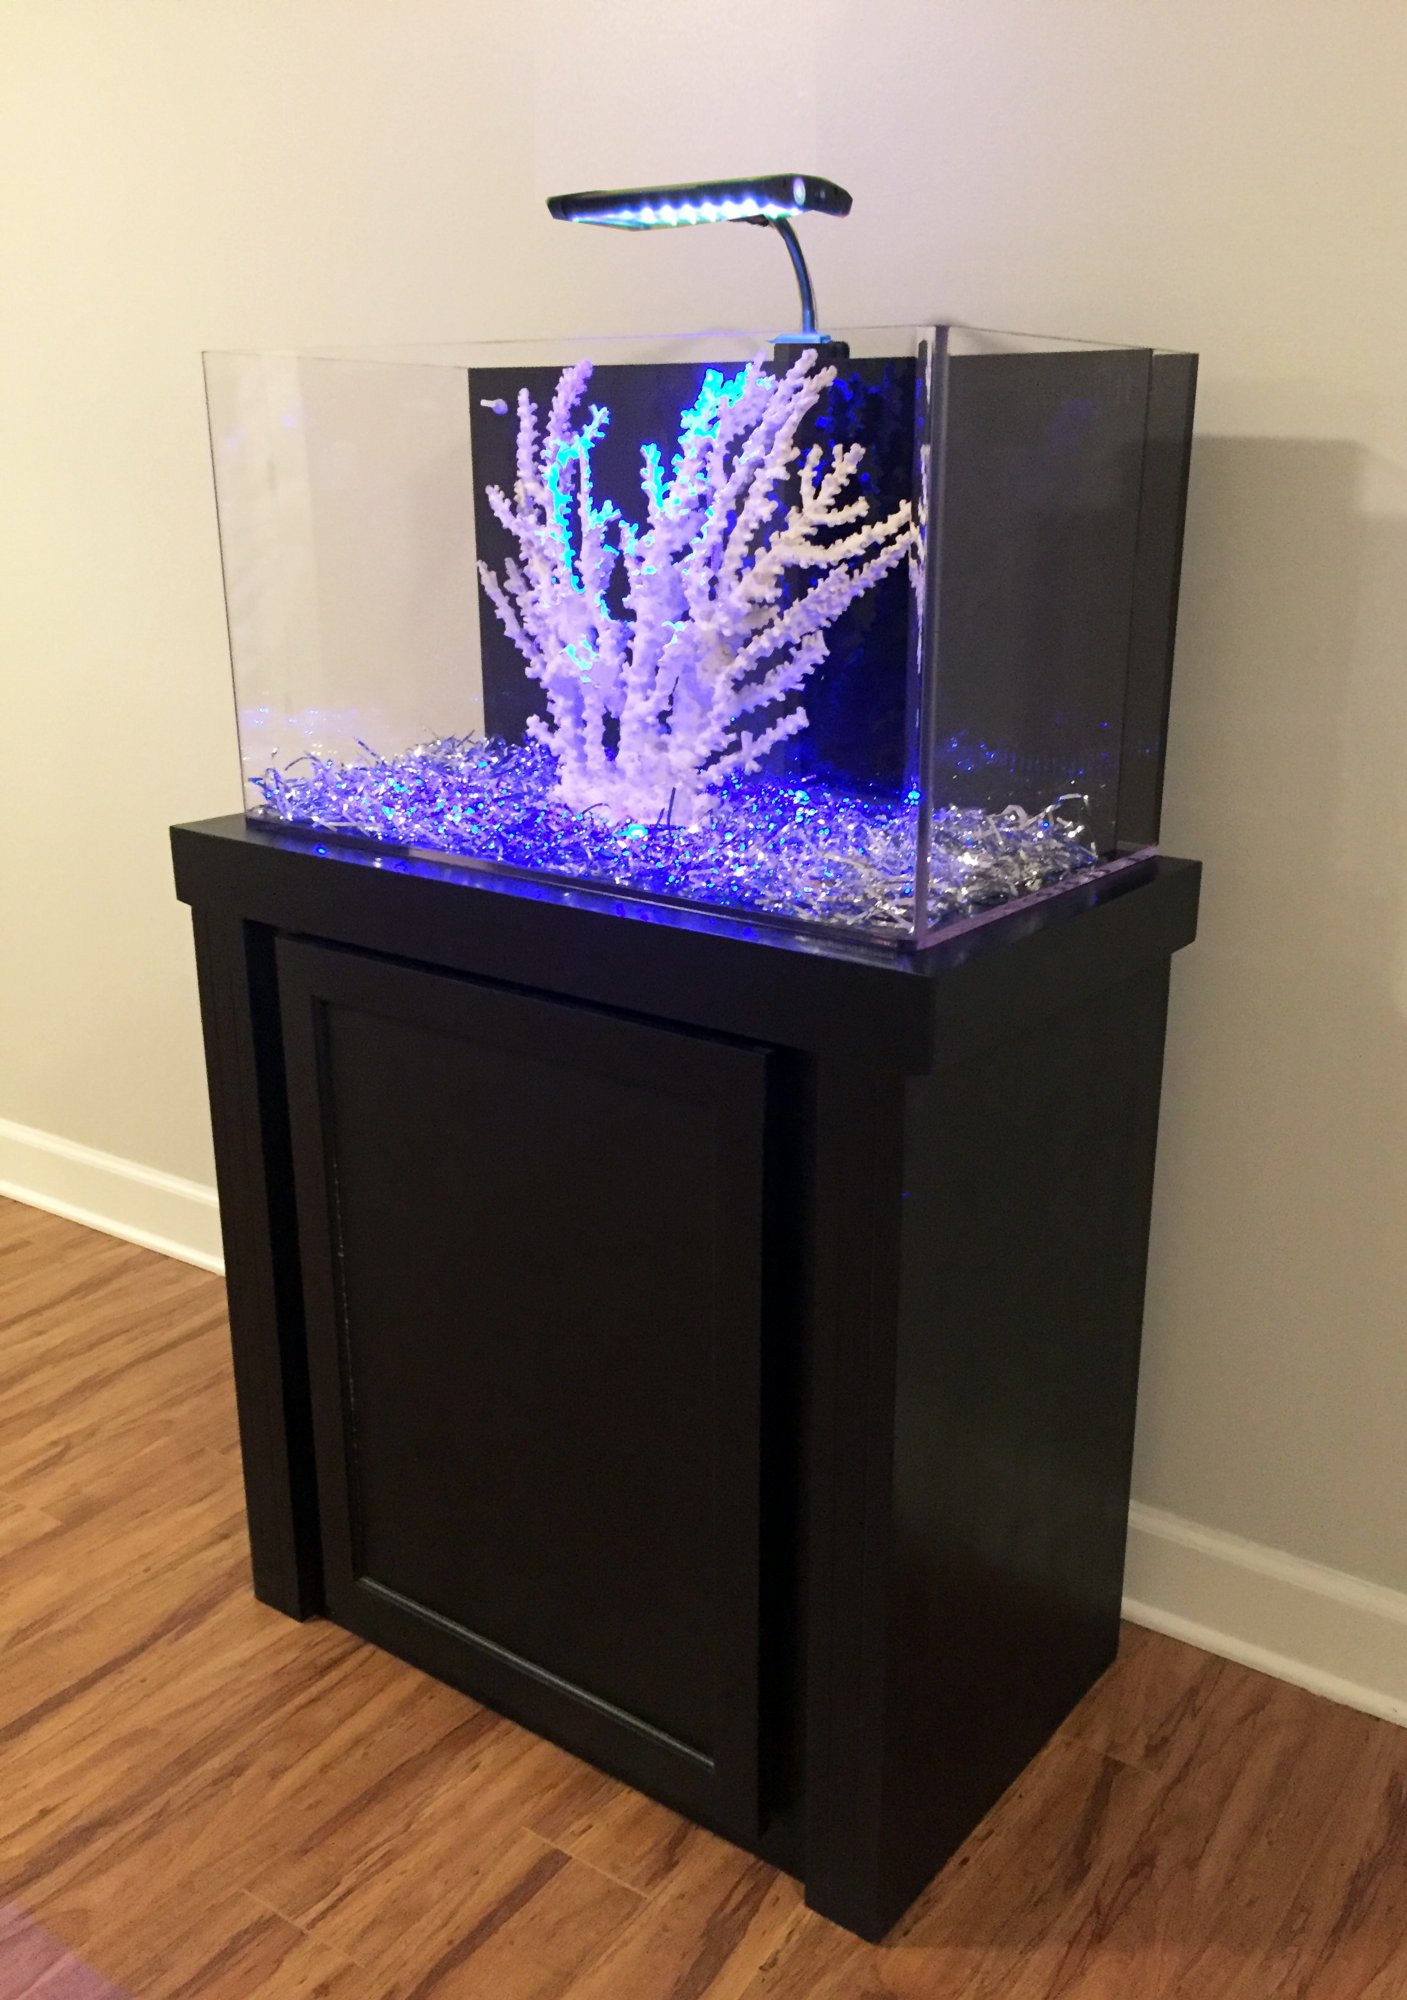 diy multi product gdbtqsc impressed light the aquarium decided to final tank zzwcr pretty stand a with gallery